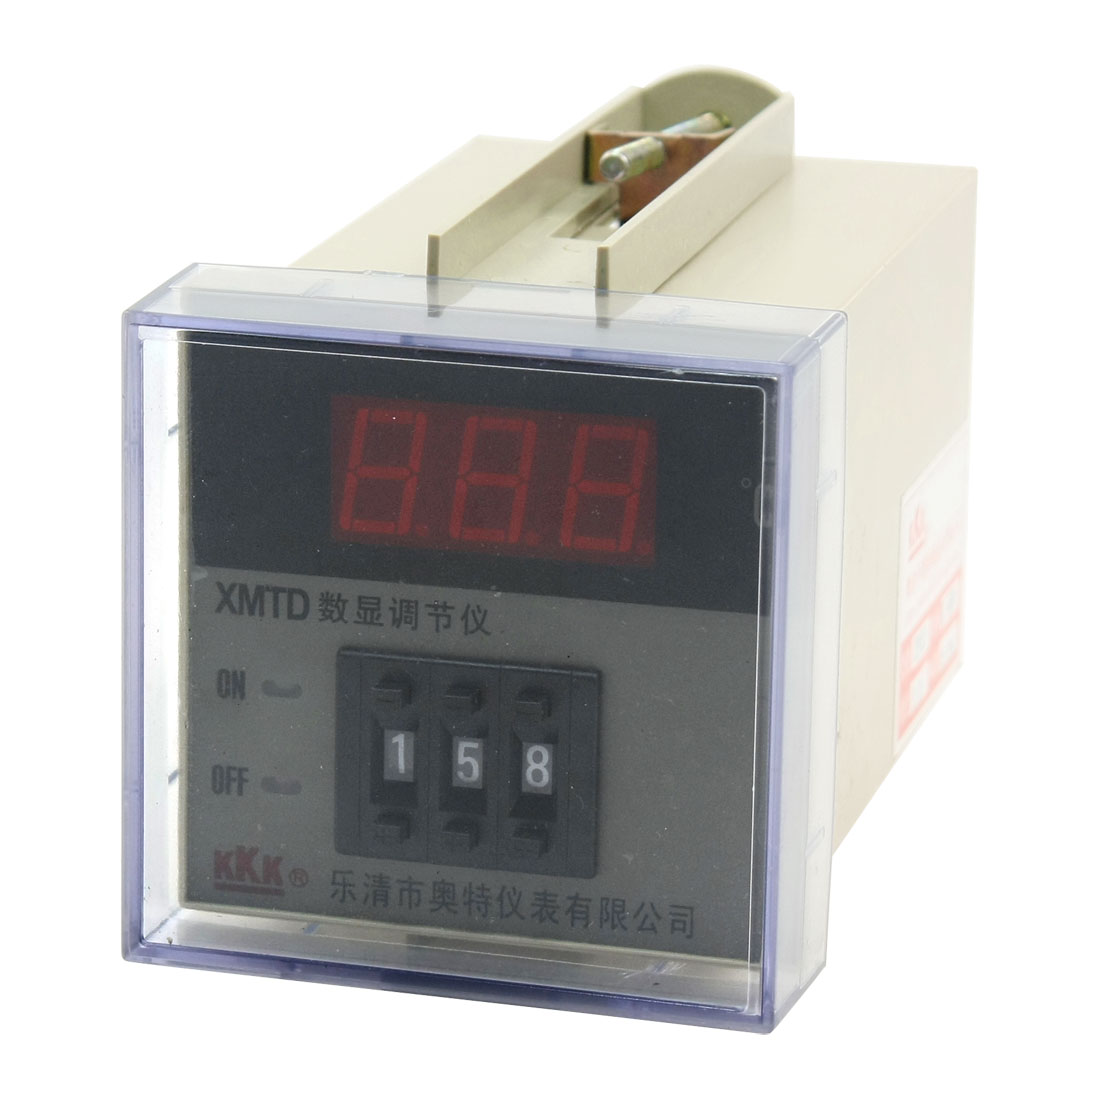 0-400C Display 10 Pins Temperature Control Controller Meter XMTD-2001M